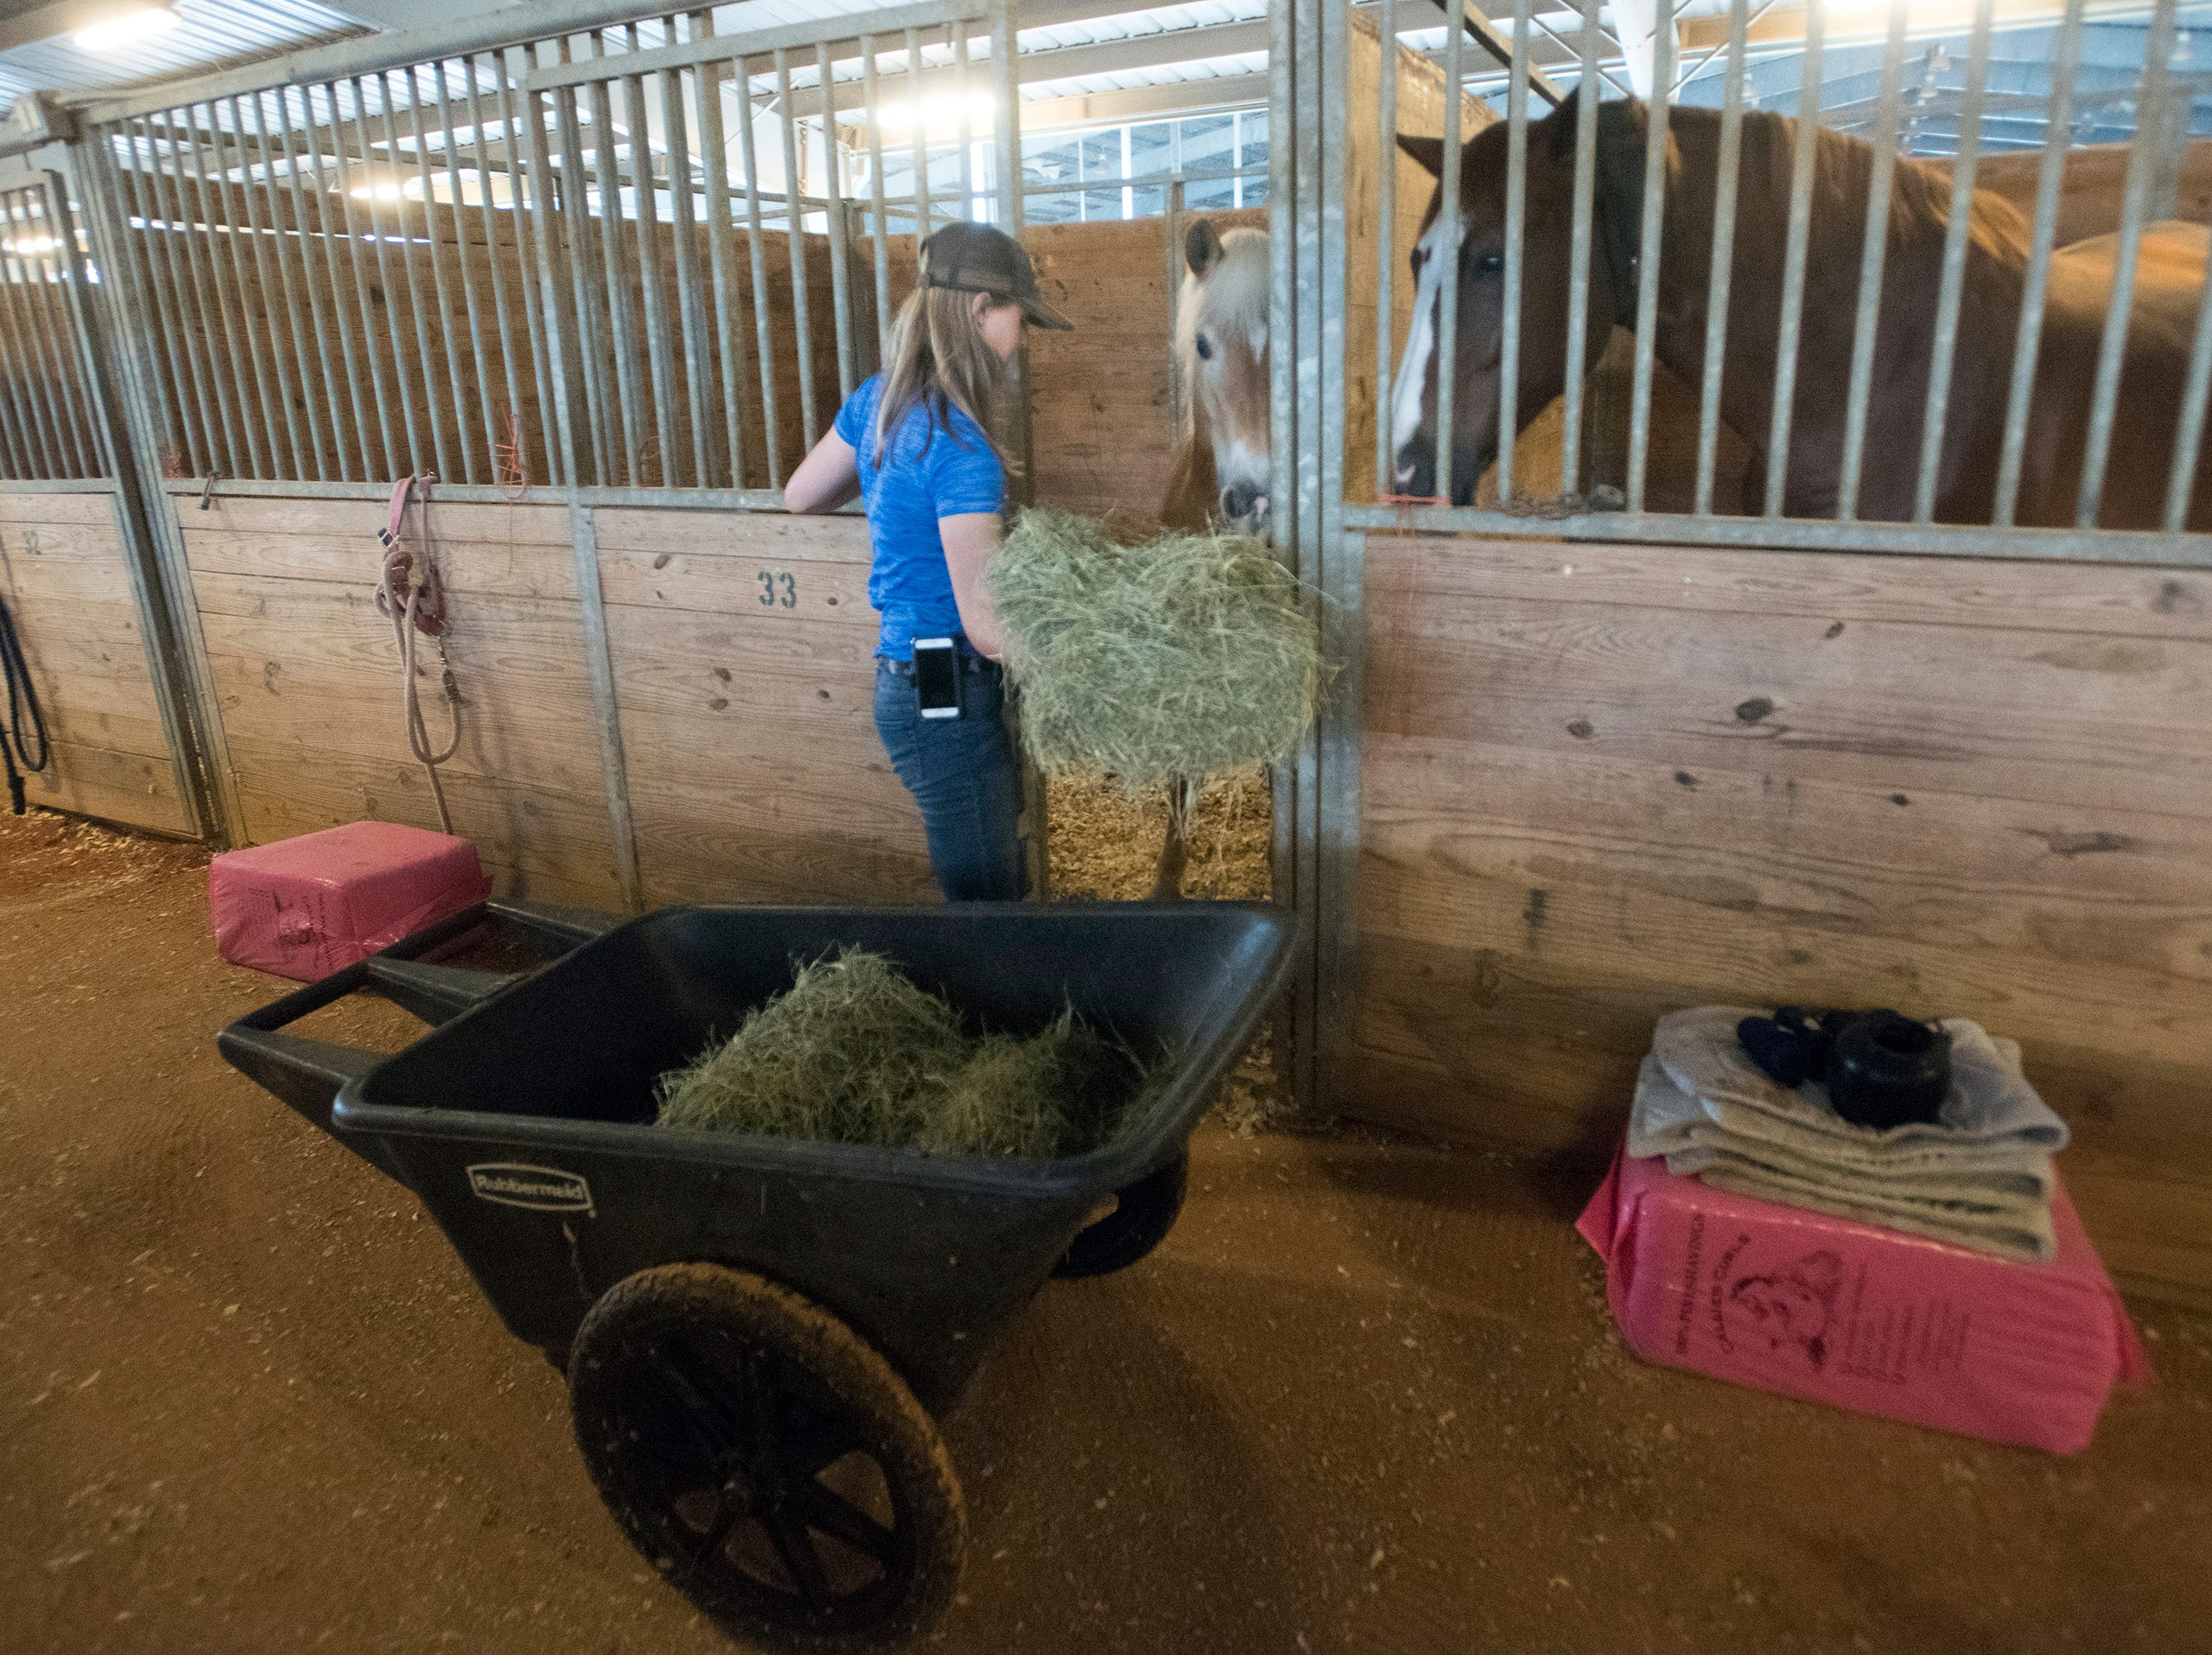 Caelyn Grodoski of Destin feeds the horses stabled at the Escambia County Equestrian Center on Wednesday, Oct. 10, 2018, as Hurricane Michael approaches the Panhandle.